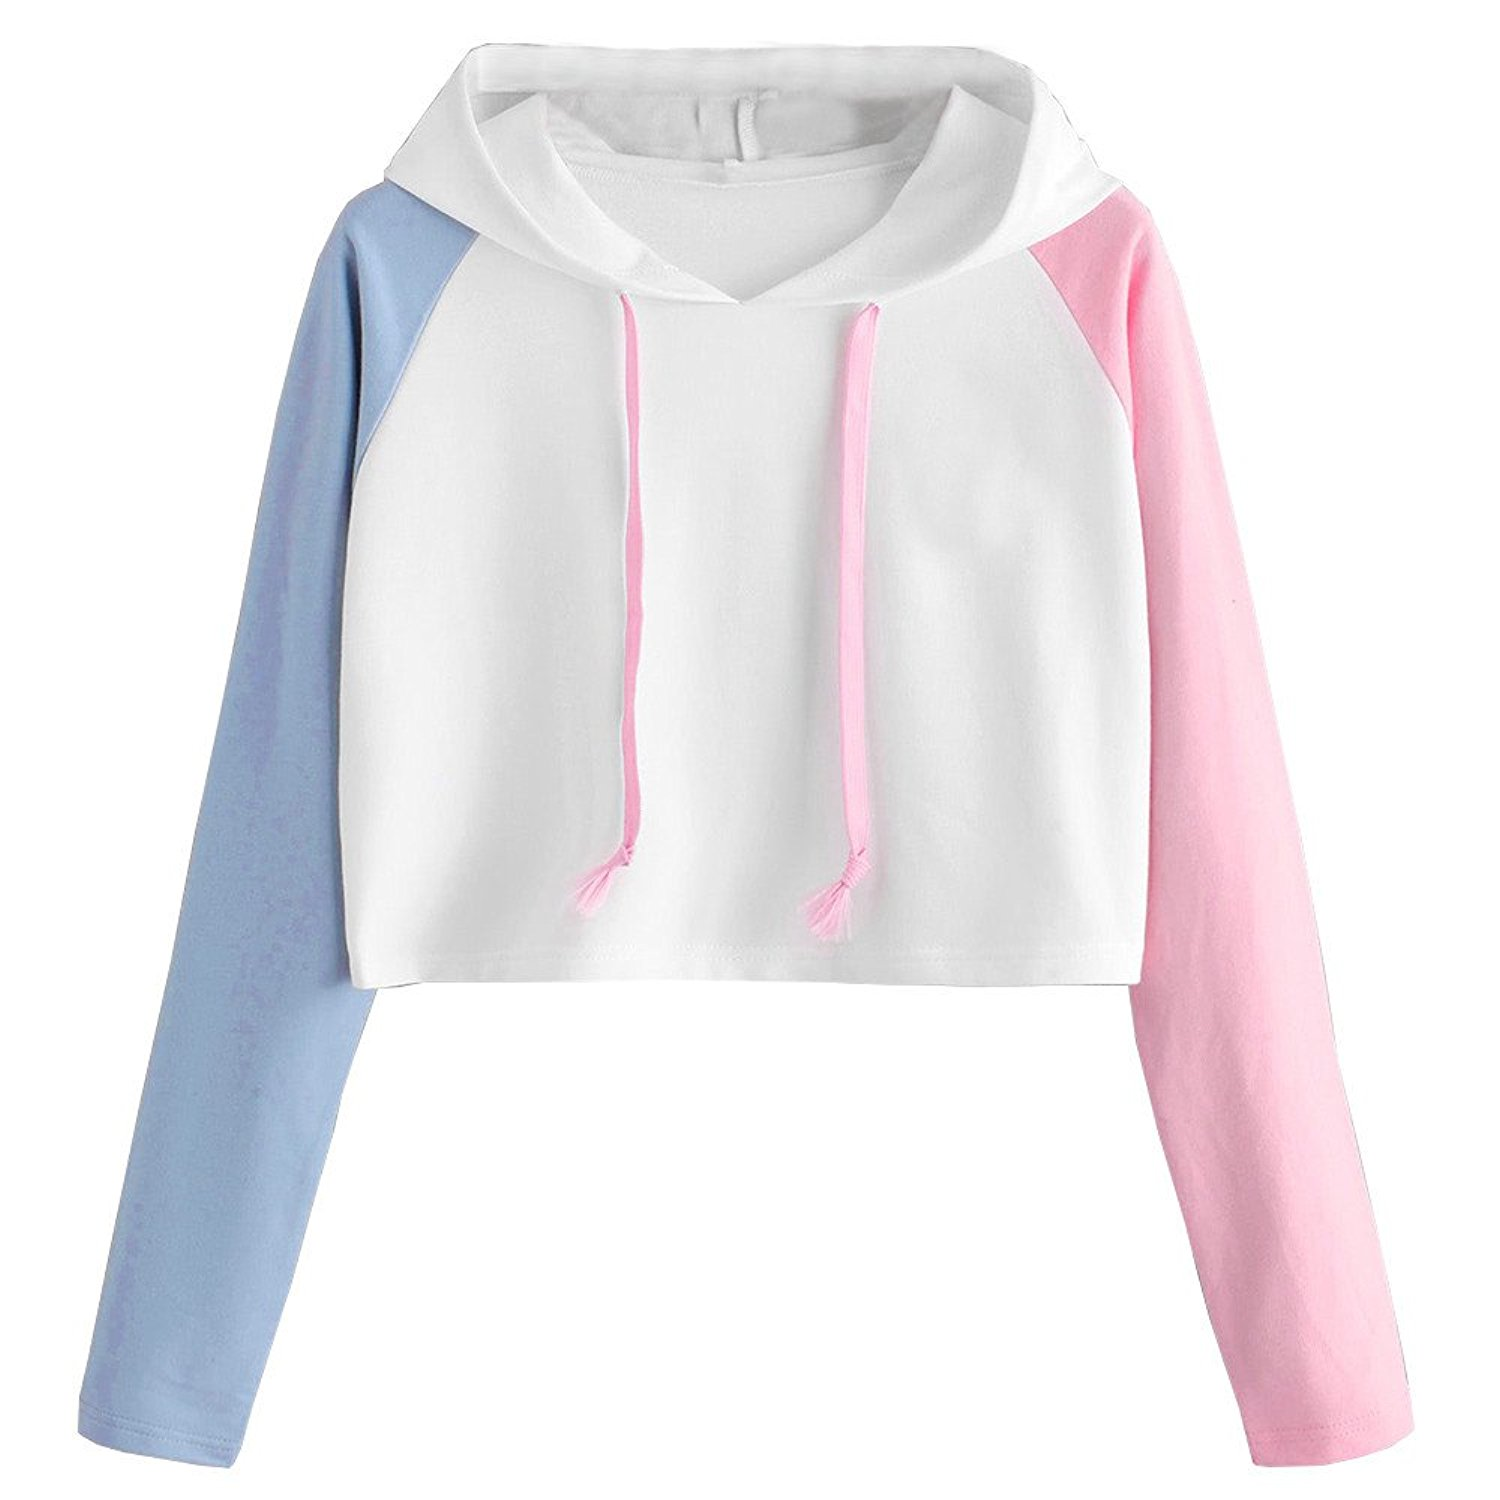 DTMN7 Whale New Printed 100/% Cotton Hoodie For Girl Spring Autumn Winter